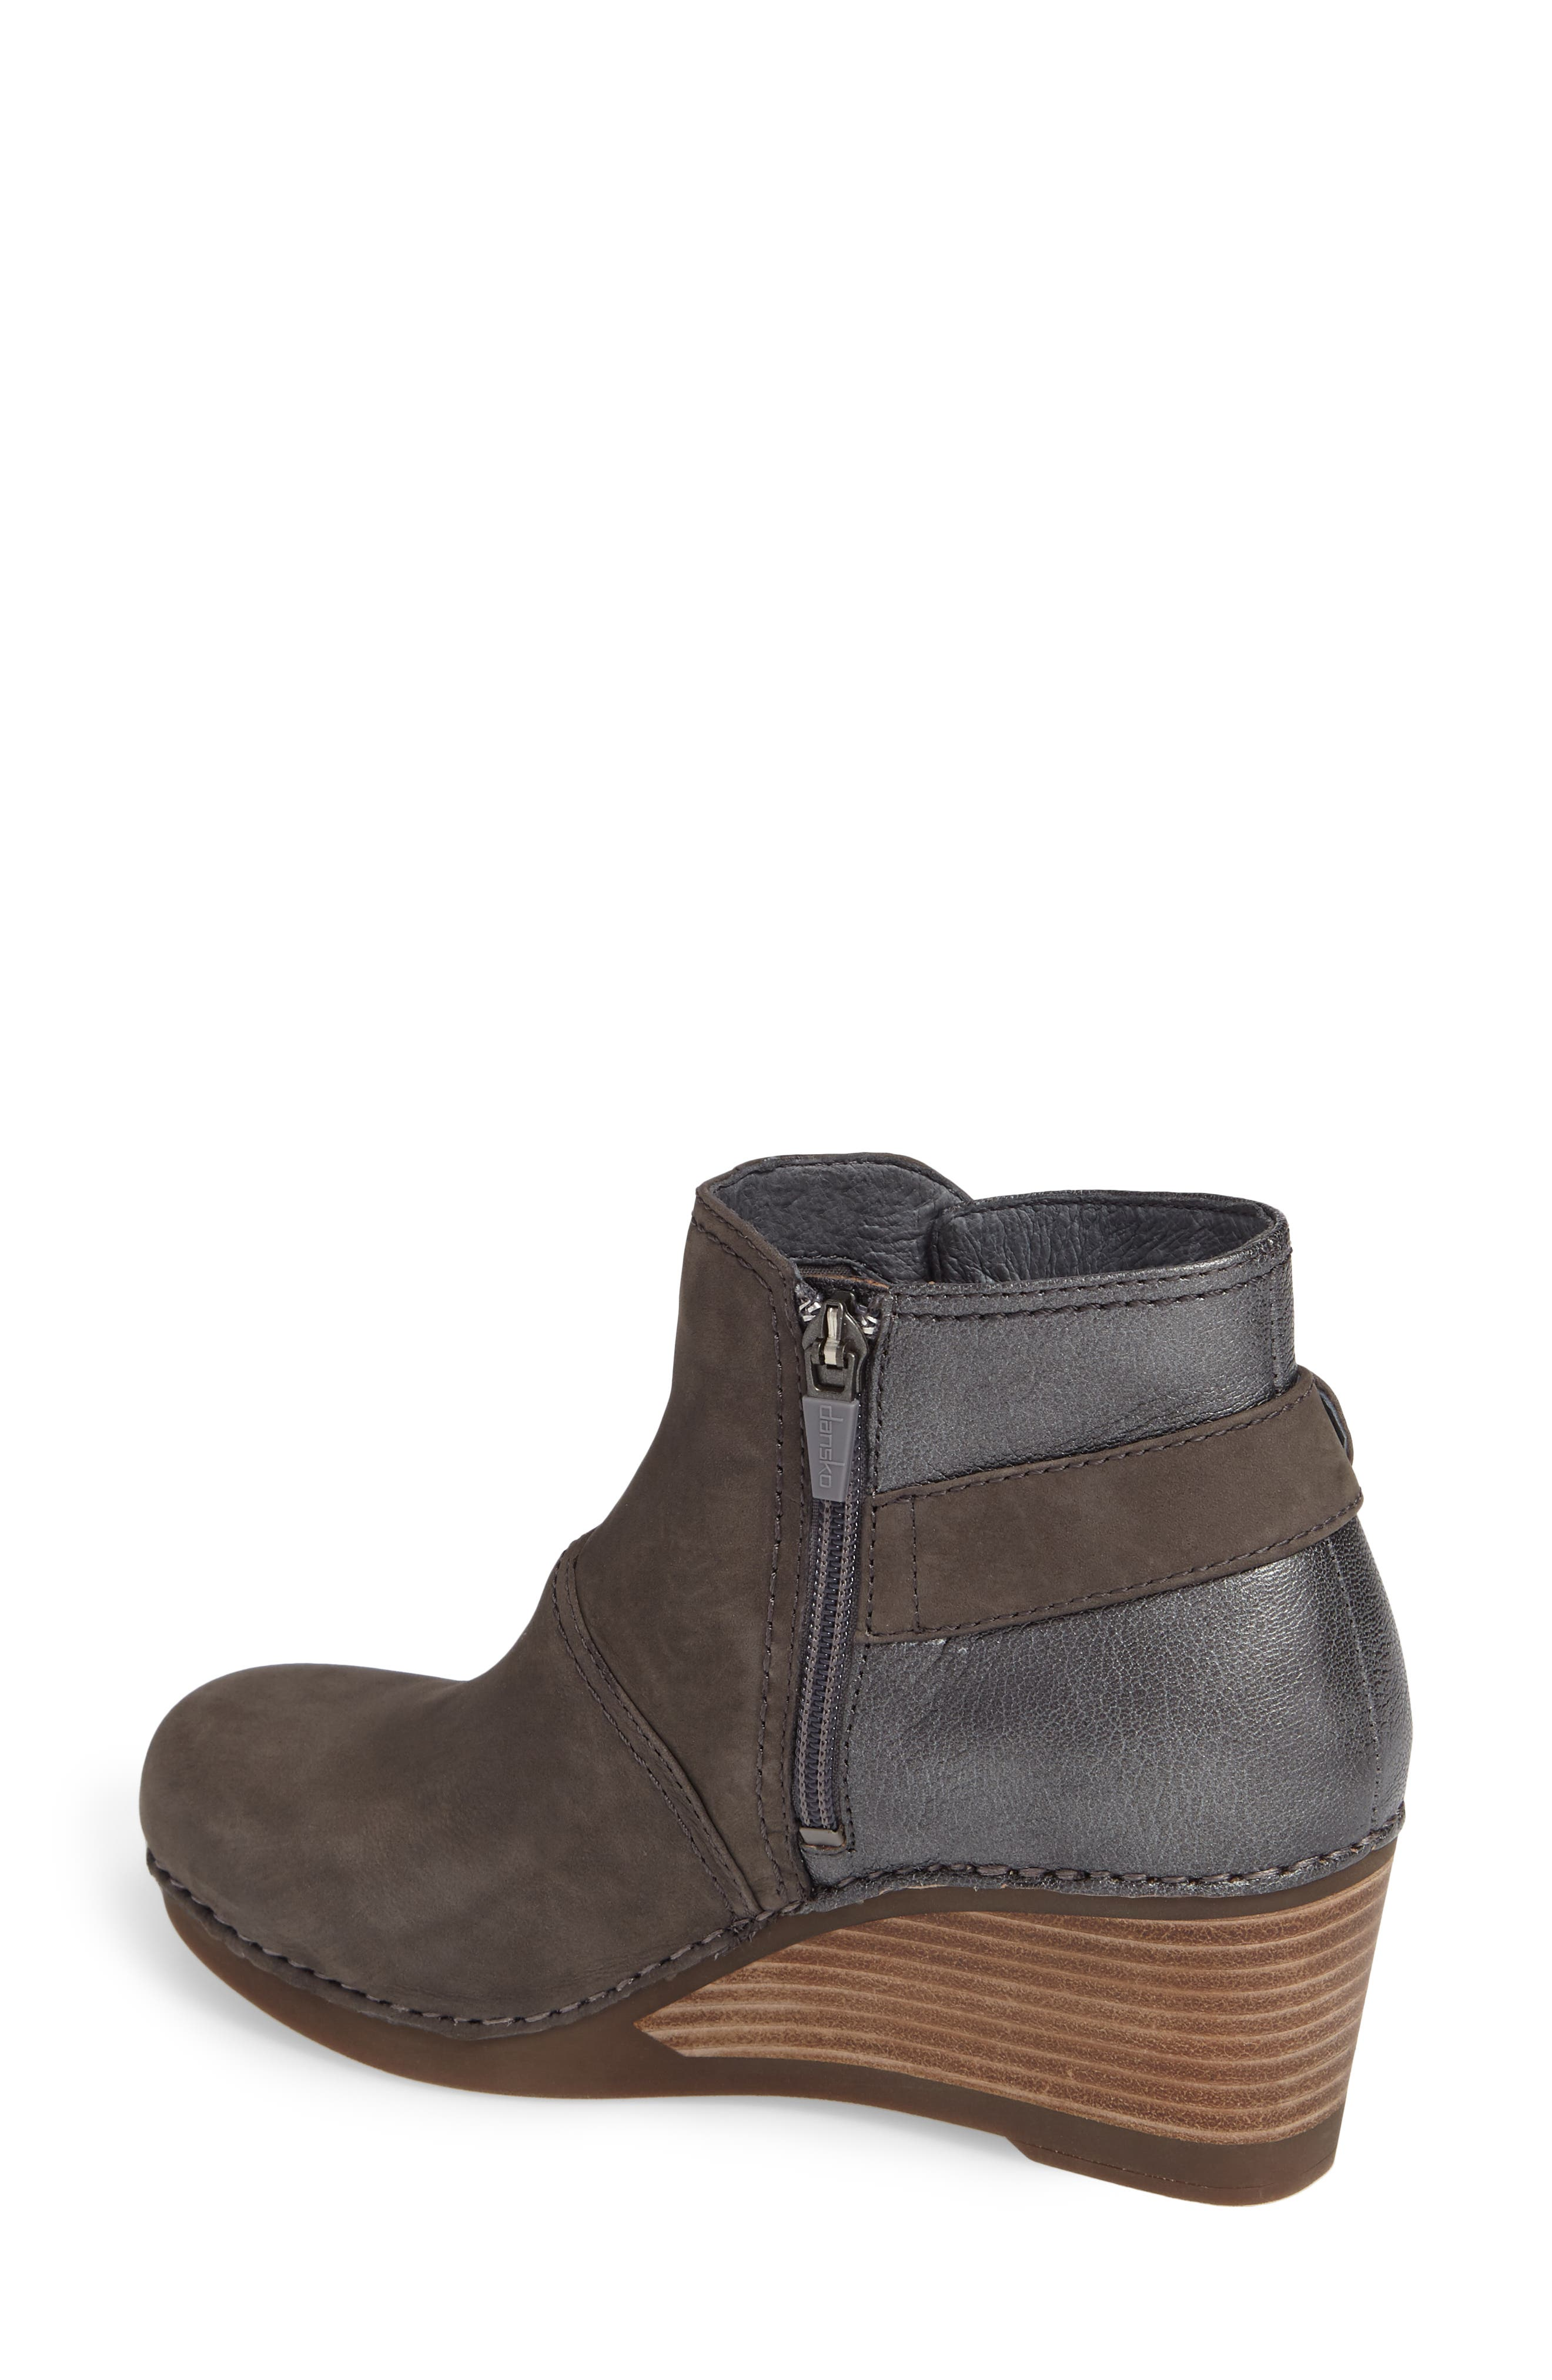 'Shirley' Wedge Bootie,                             Alternate thumbnail 8, color,